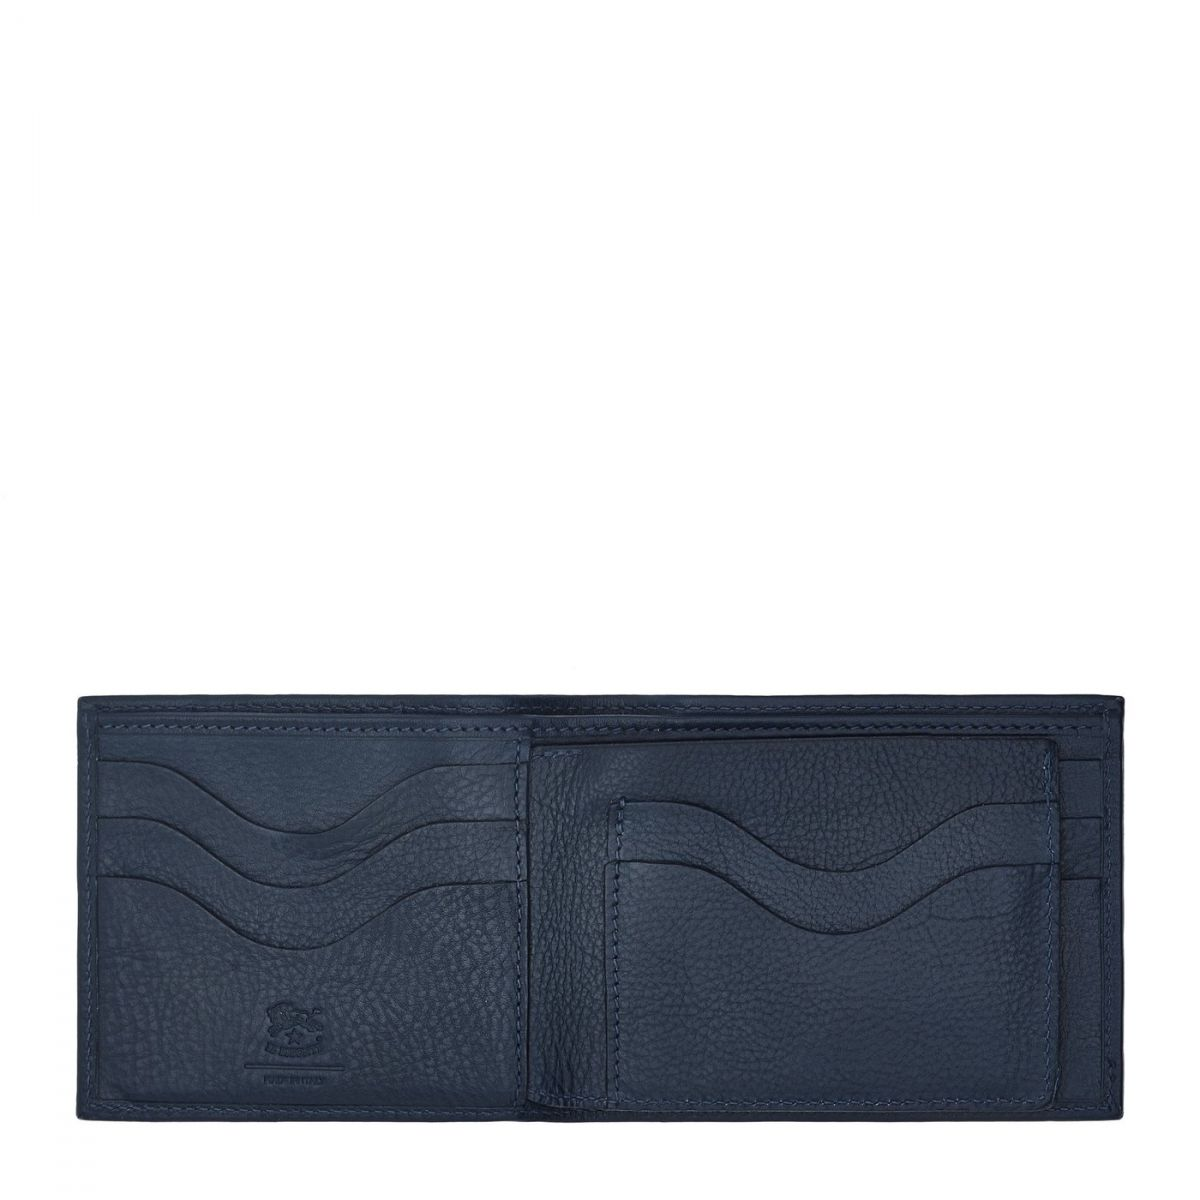 Men's Bi-Fold Wallet  in Cowhide Leather SBW042 color Blue | Details